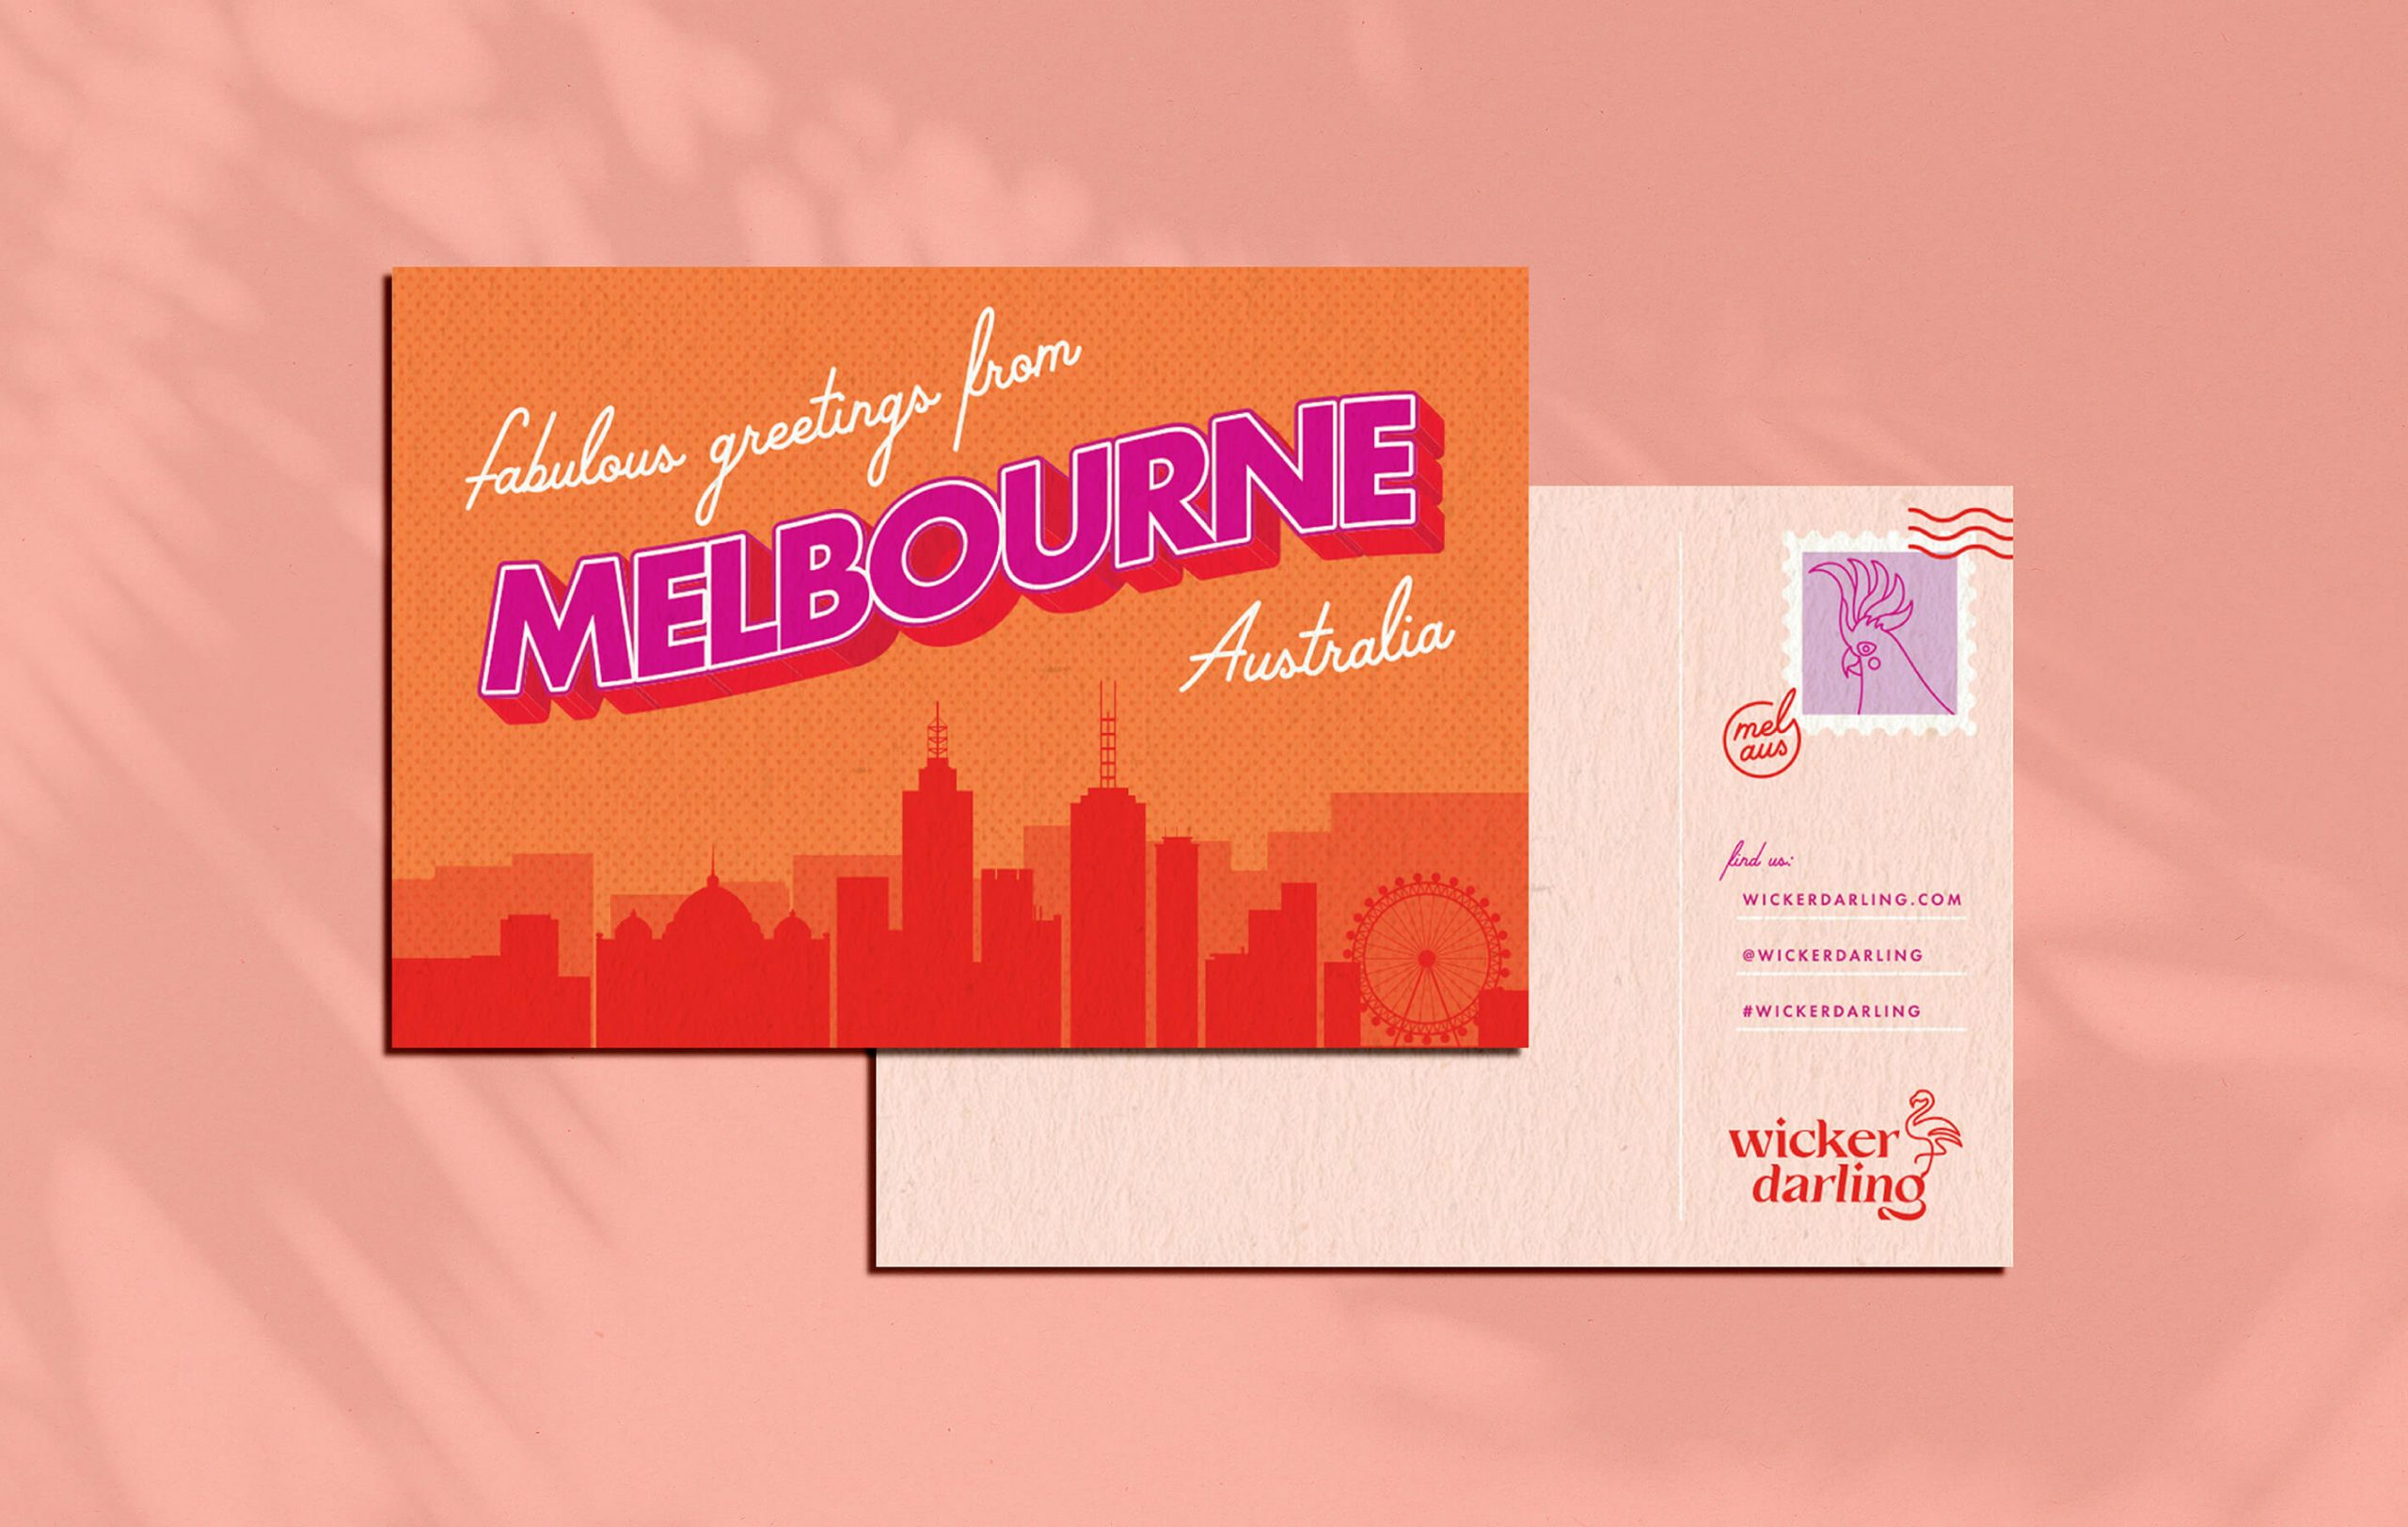 Vintage style postcode of Melbourne Australia. The back is a Wicker Darling thank you card for custom packaging.